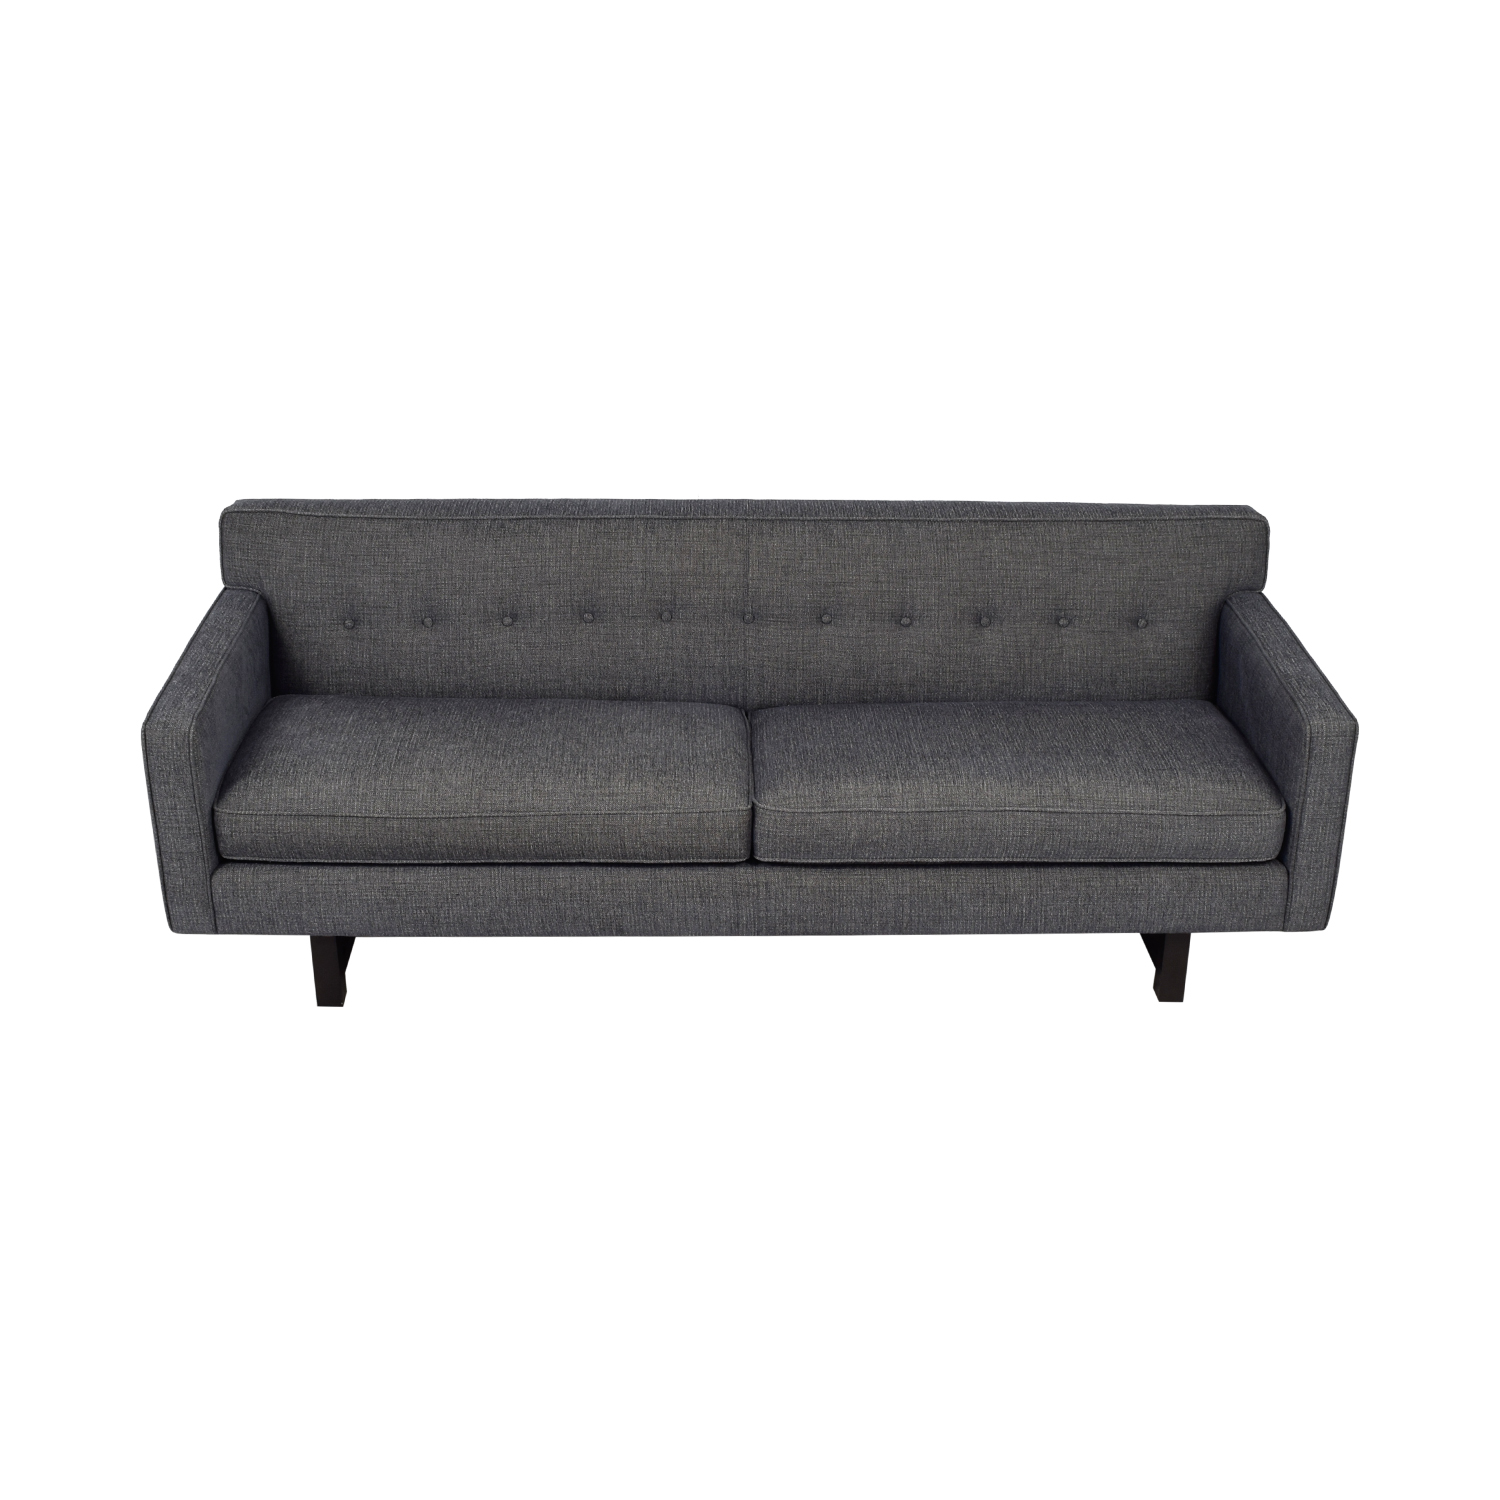 buy Room & Board Andre Grey Tufted Two-Cushion Sofa Room & Board Sofas